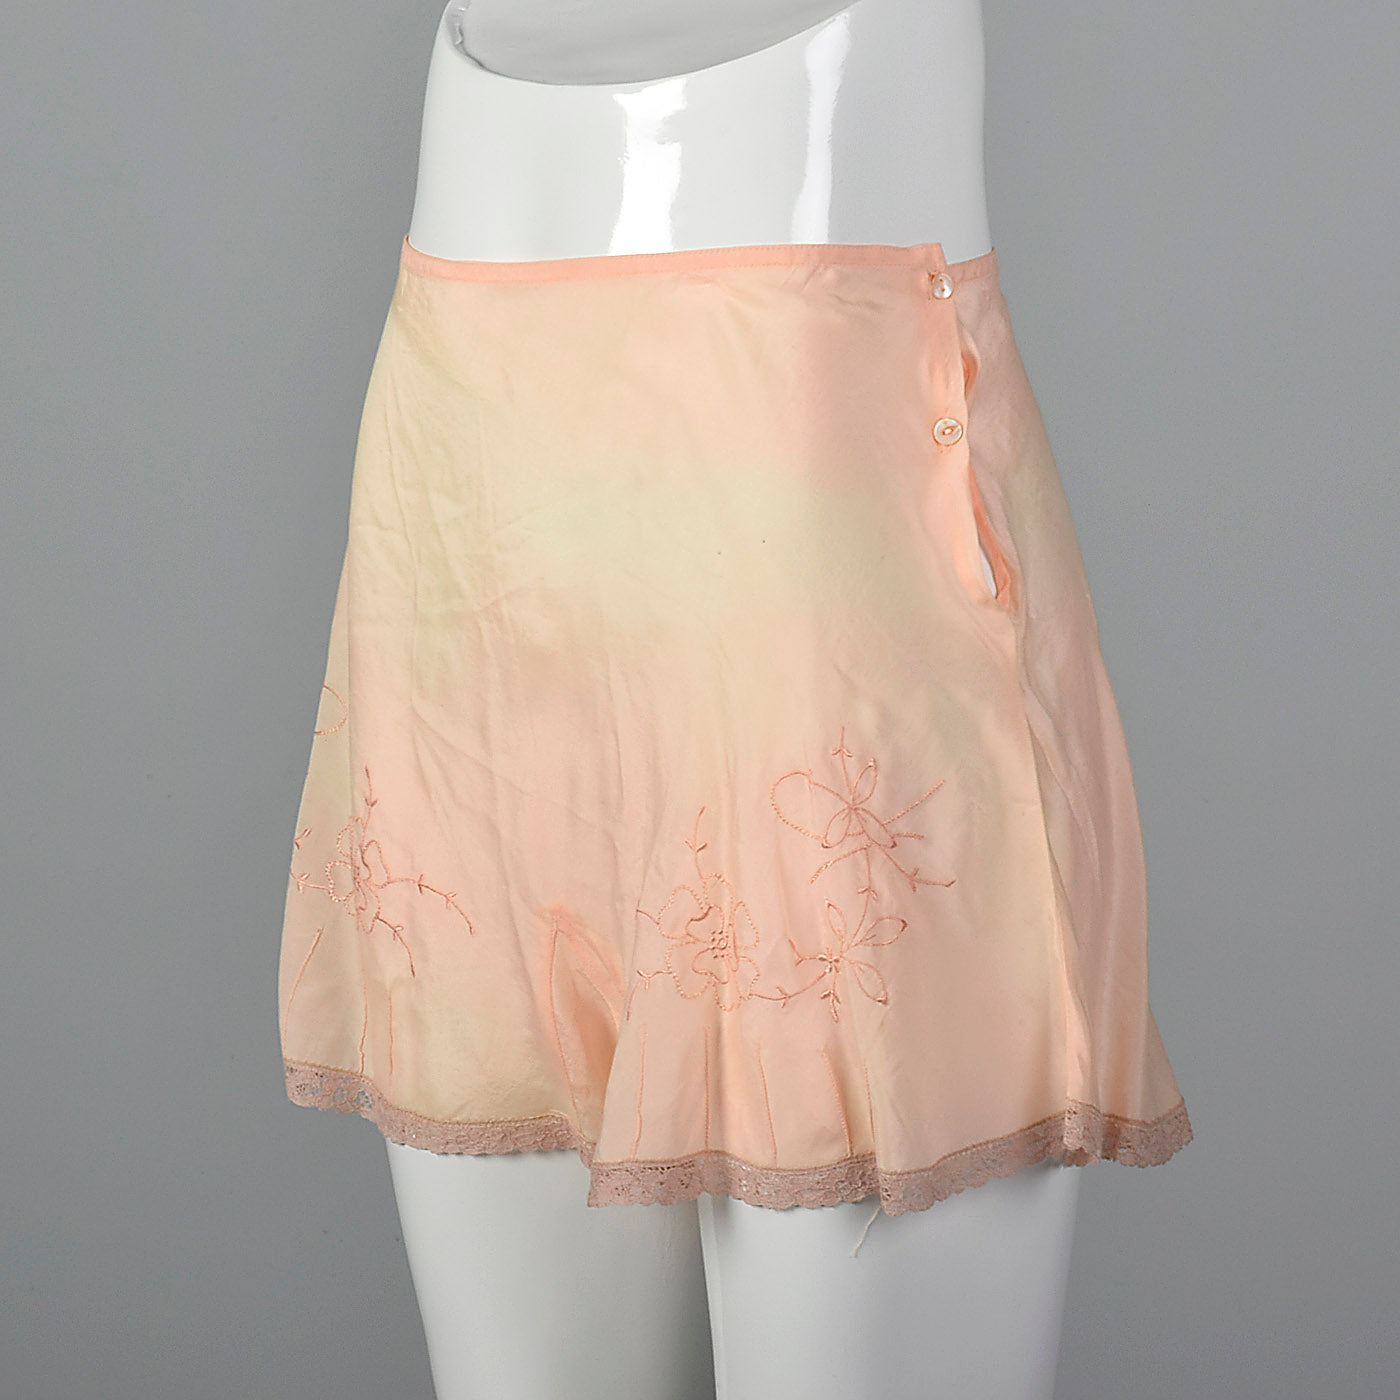 1930s Pink Slip Shorts with Floral Embroidery